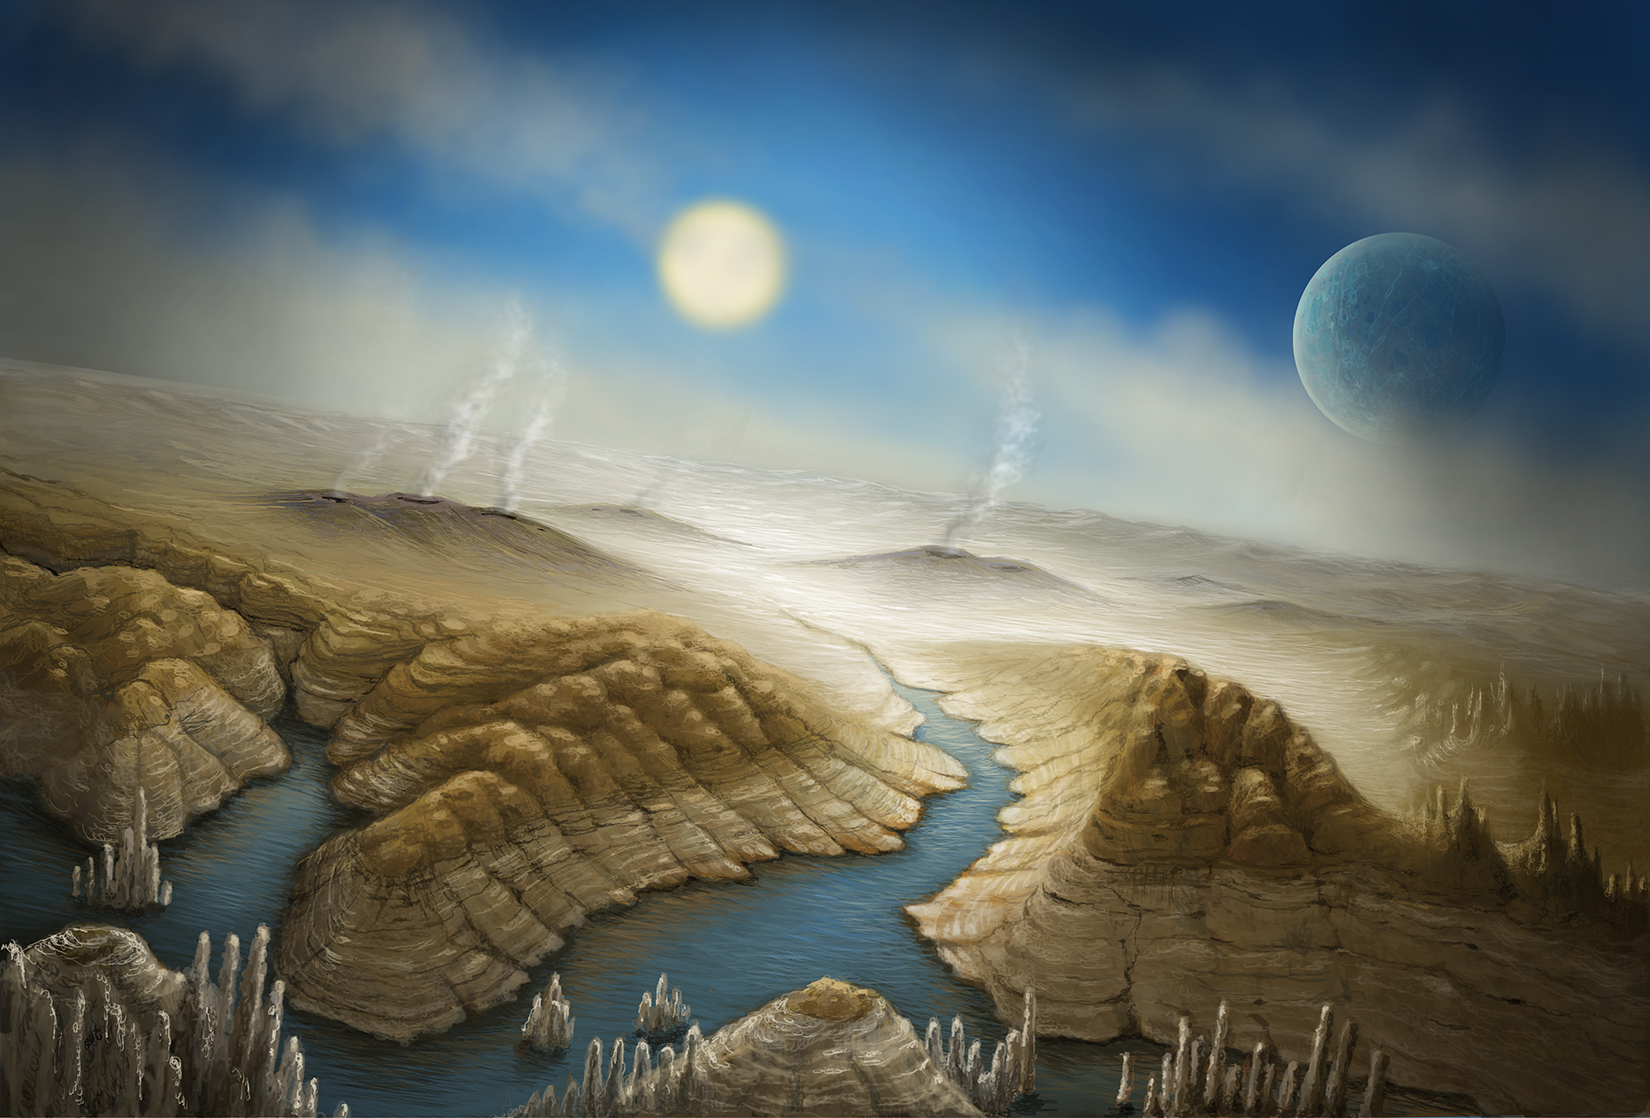 Kepler-452b: A Possible Earth 2.0